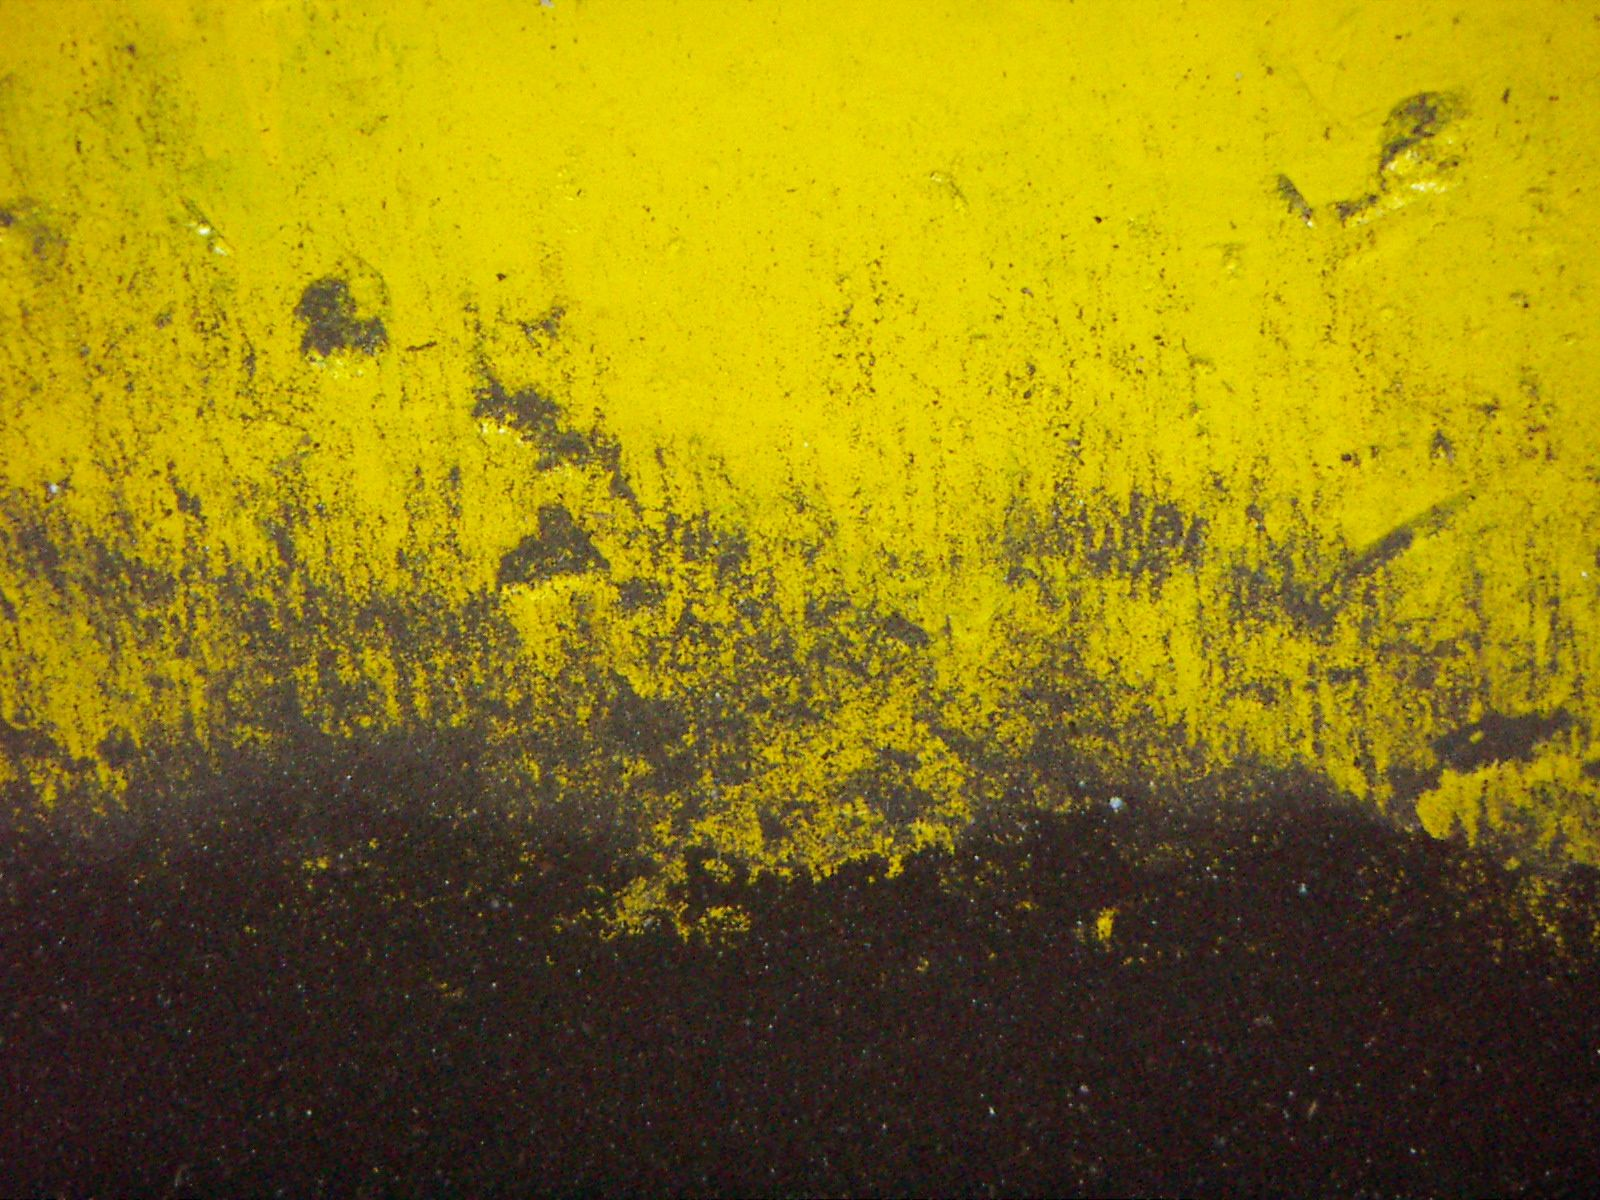 Yellow Abstract Wallpapers Hd Download 1920 1200 Yellow Abstract Wallpapers 46 Wallpapers Adorable Black Background Wallpaper Yellow Art Abstract Wallpaper